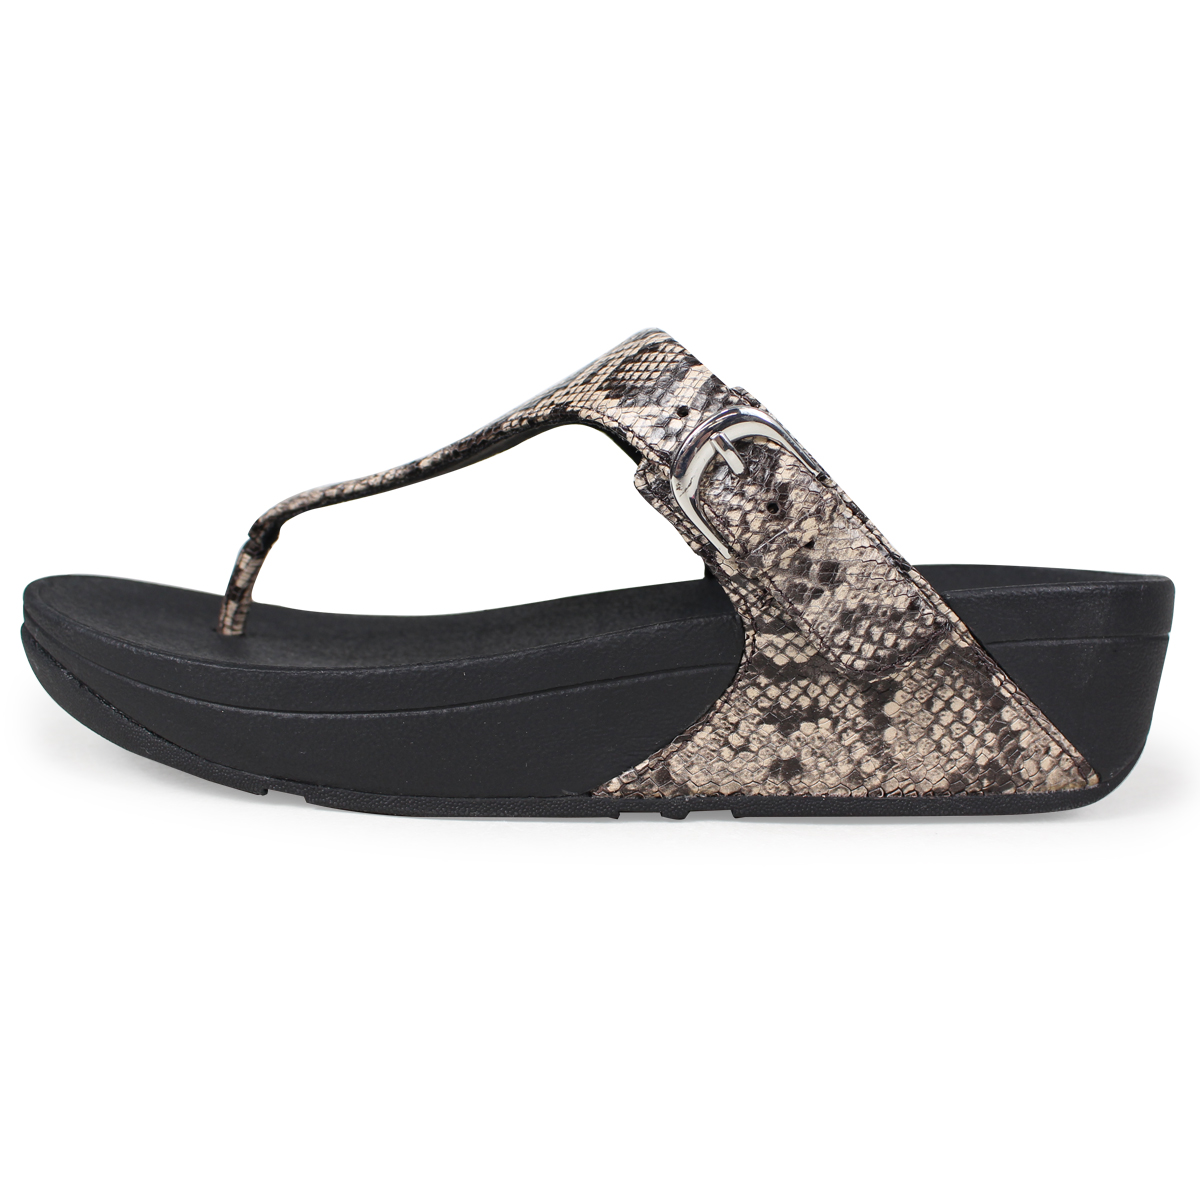 1ae455c2a1e5 FitFlop SKINNY TOE-THONG SANDALS SNAKE PRINT LEATHER sandals fitting FLOPS  Kinney Lady s L69 black  4 4 Shinnyu load